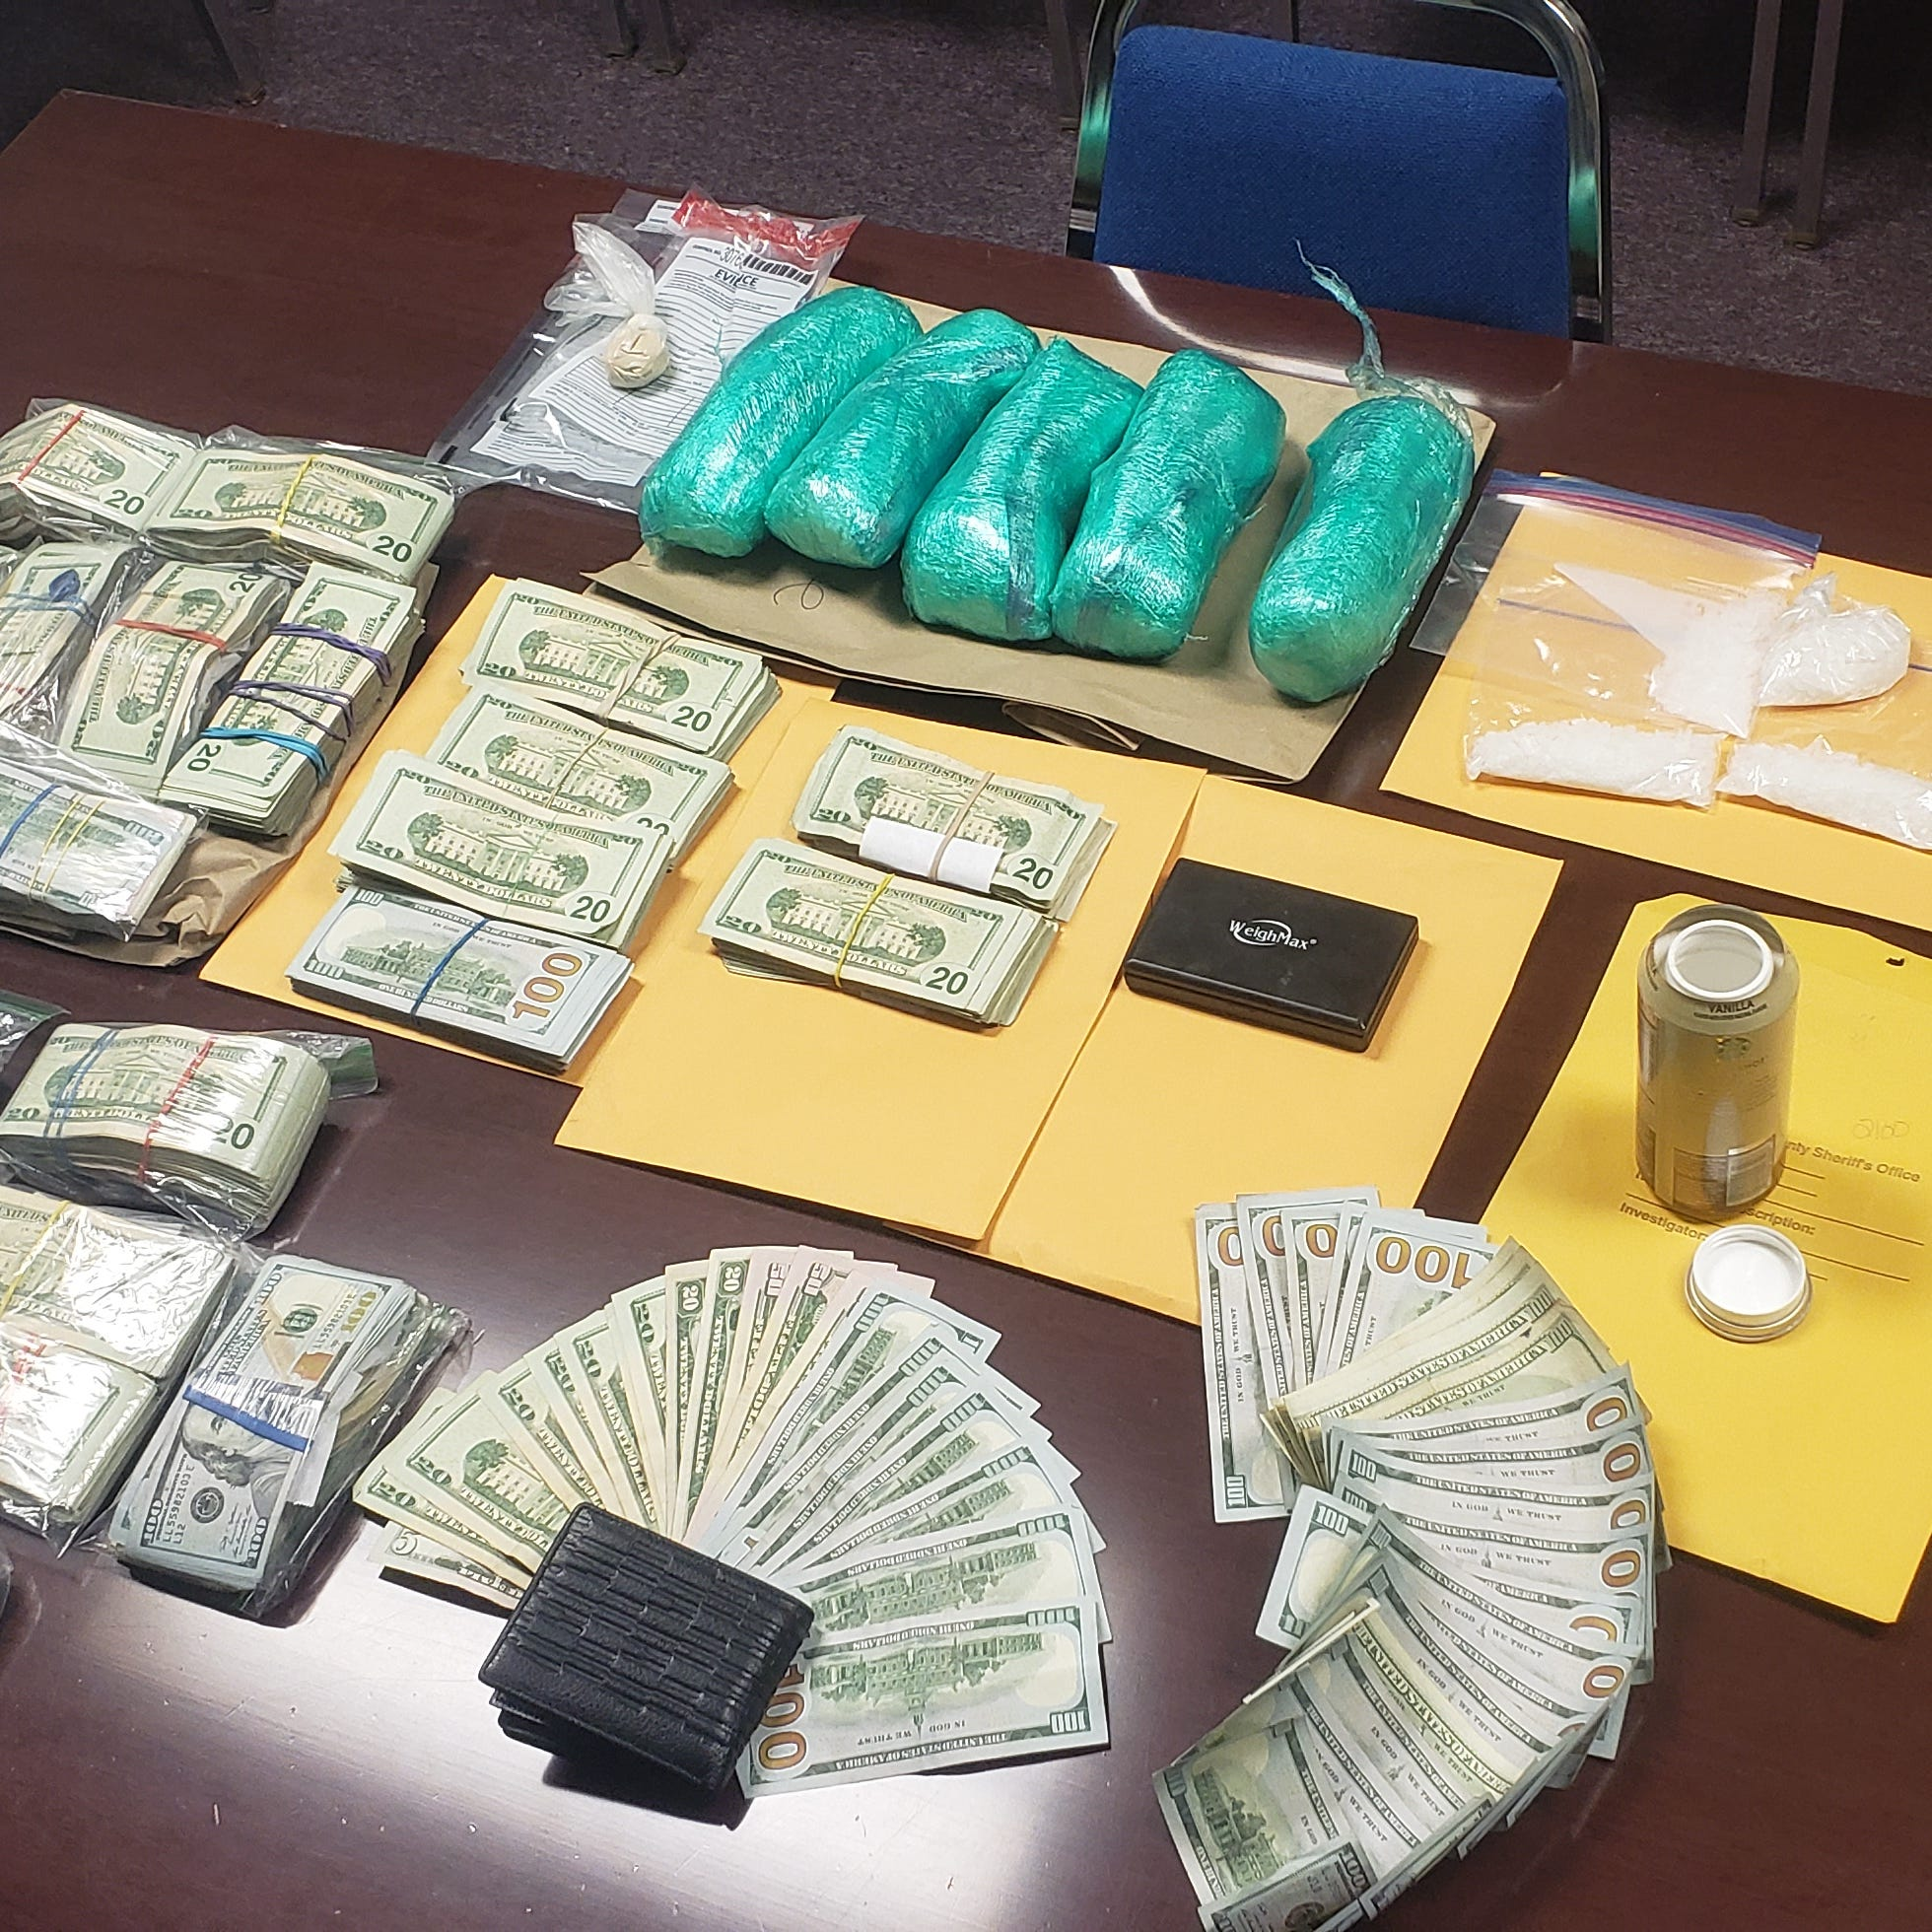 Man's arrest in Waynesboro leads police to large drug bust in New Market